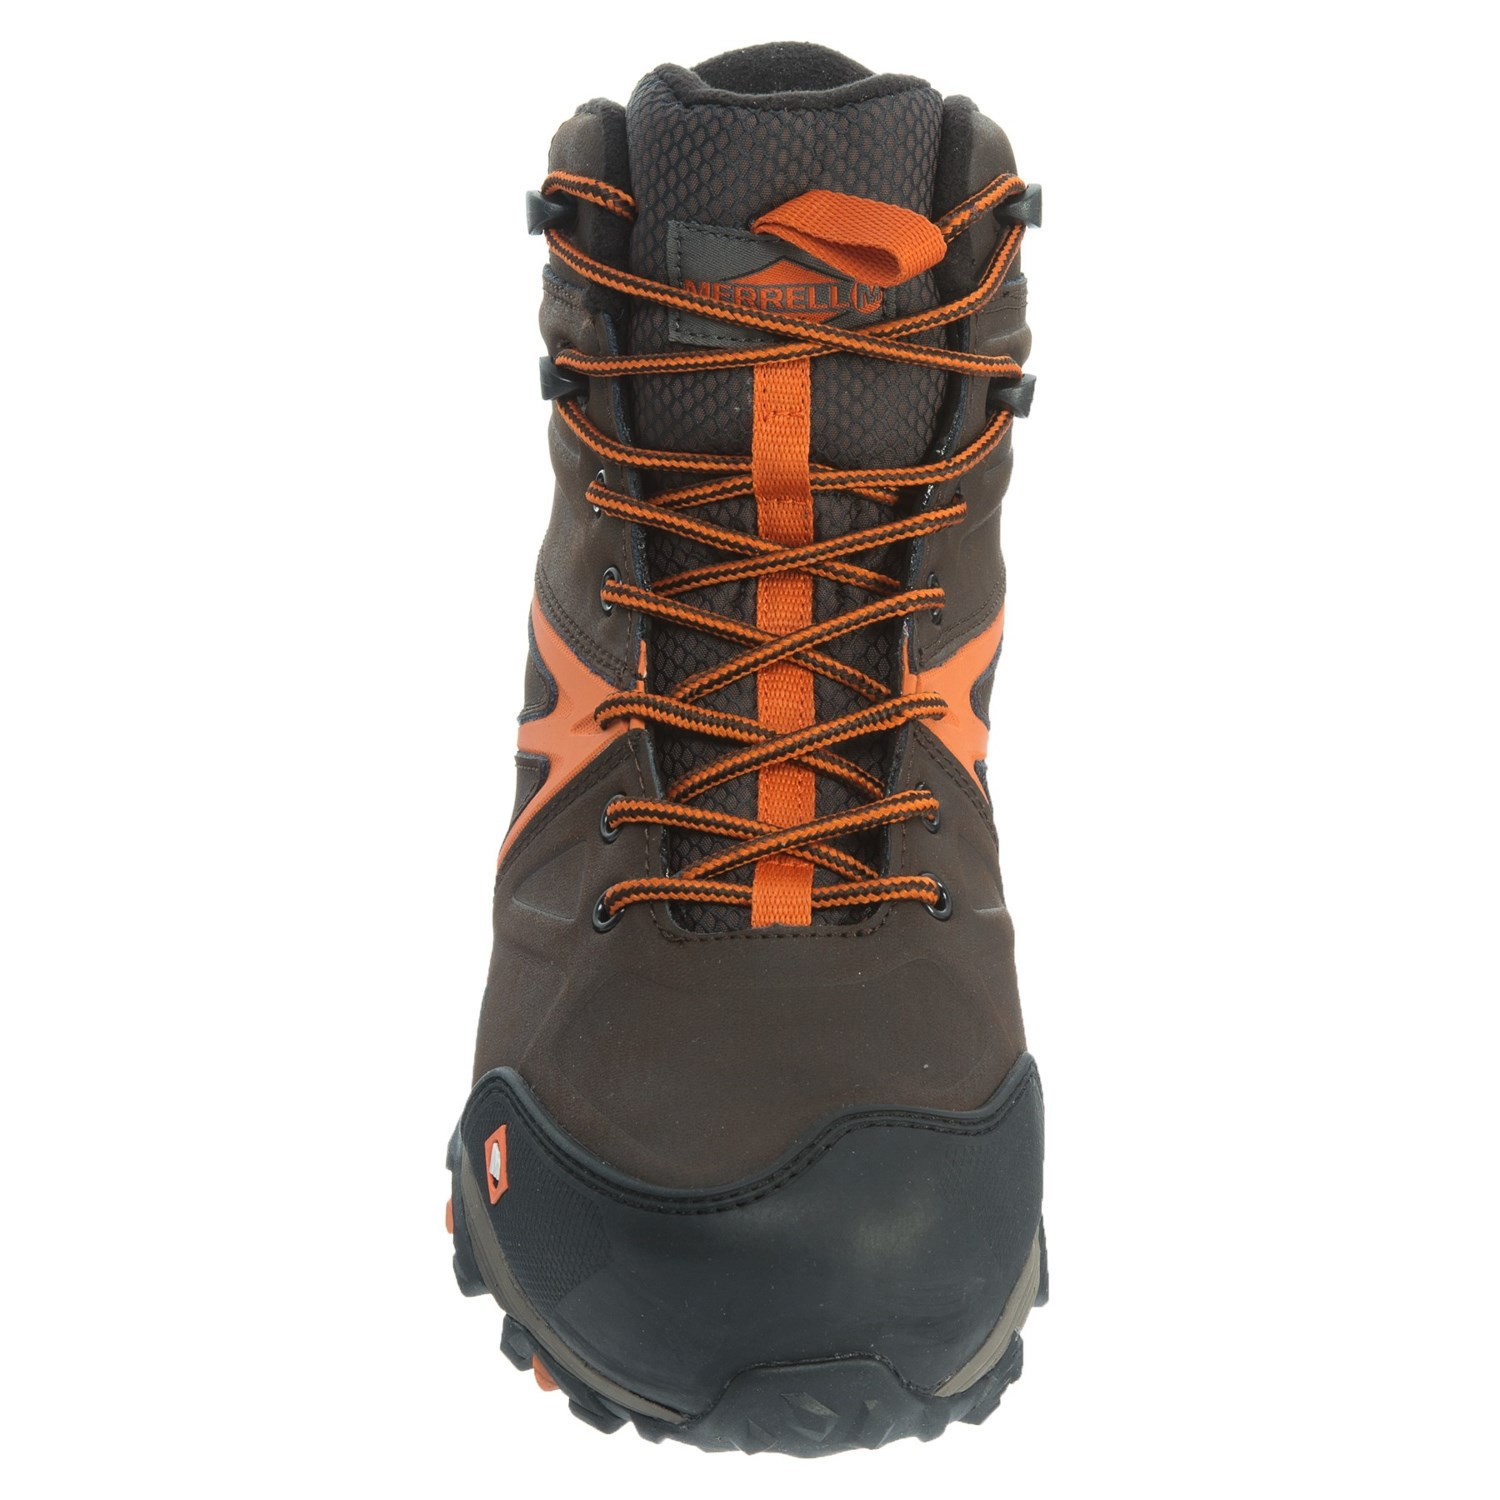 314a8dec0 Merrell Trailwork Mid Work Boots - Waterproof, Composite Safety Toe (For Men )